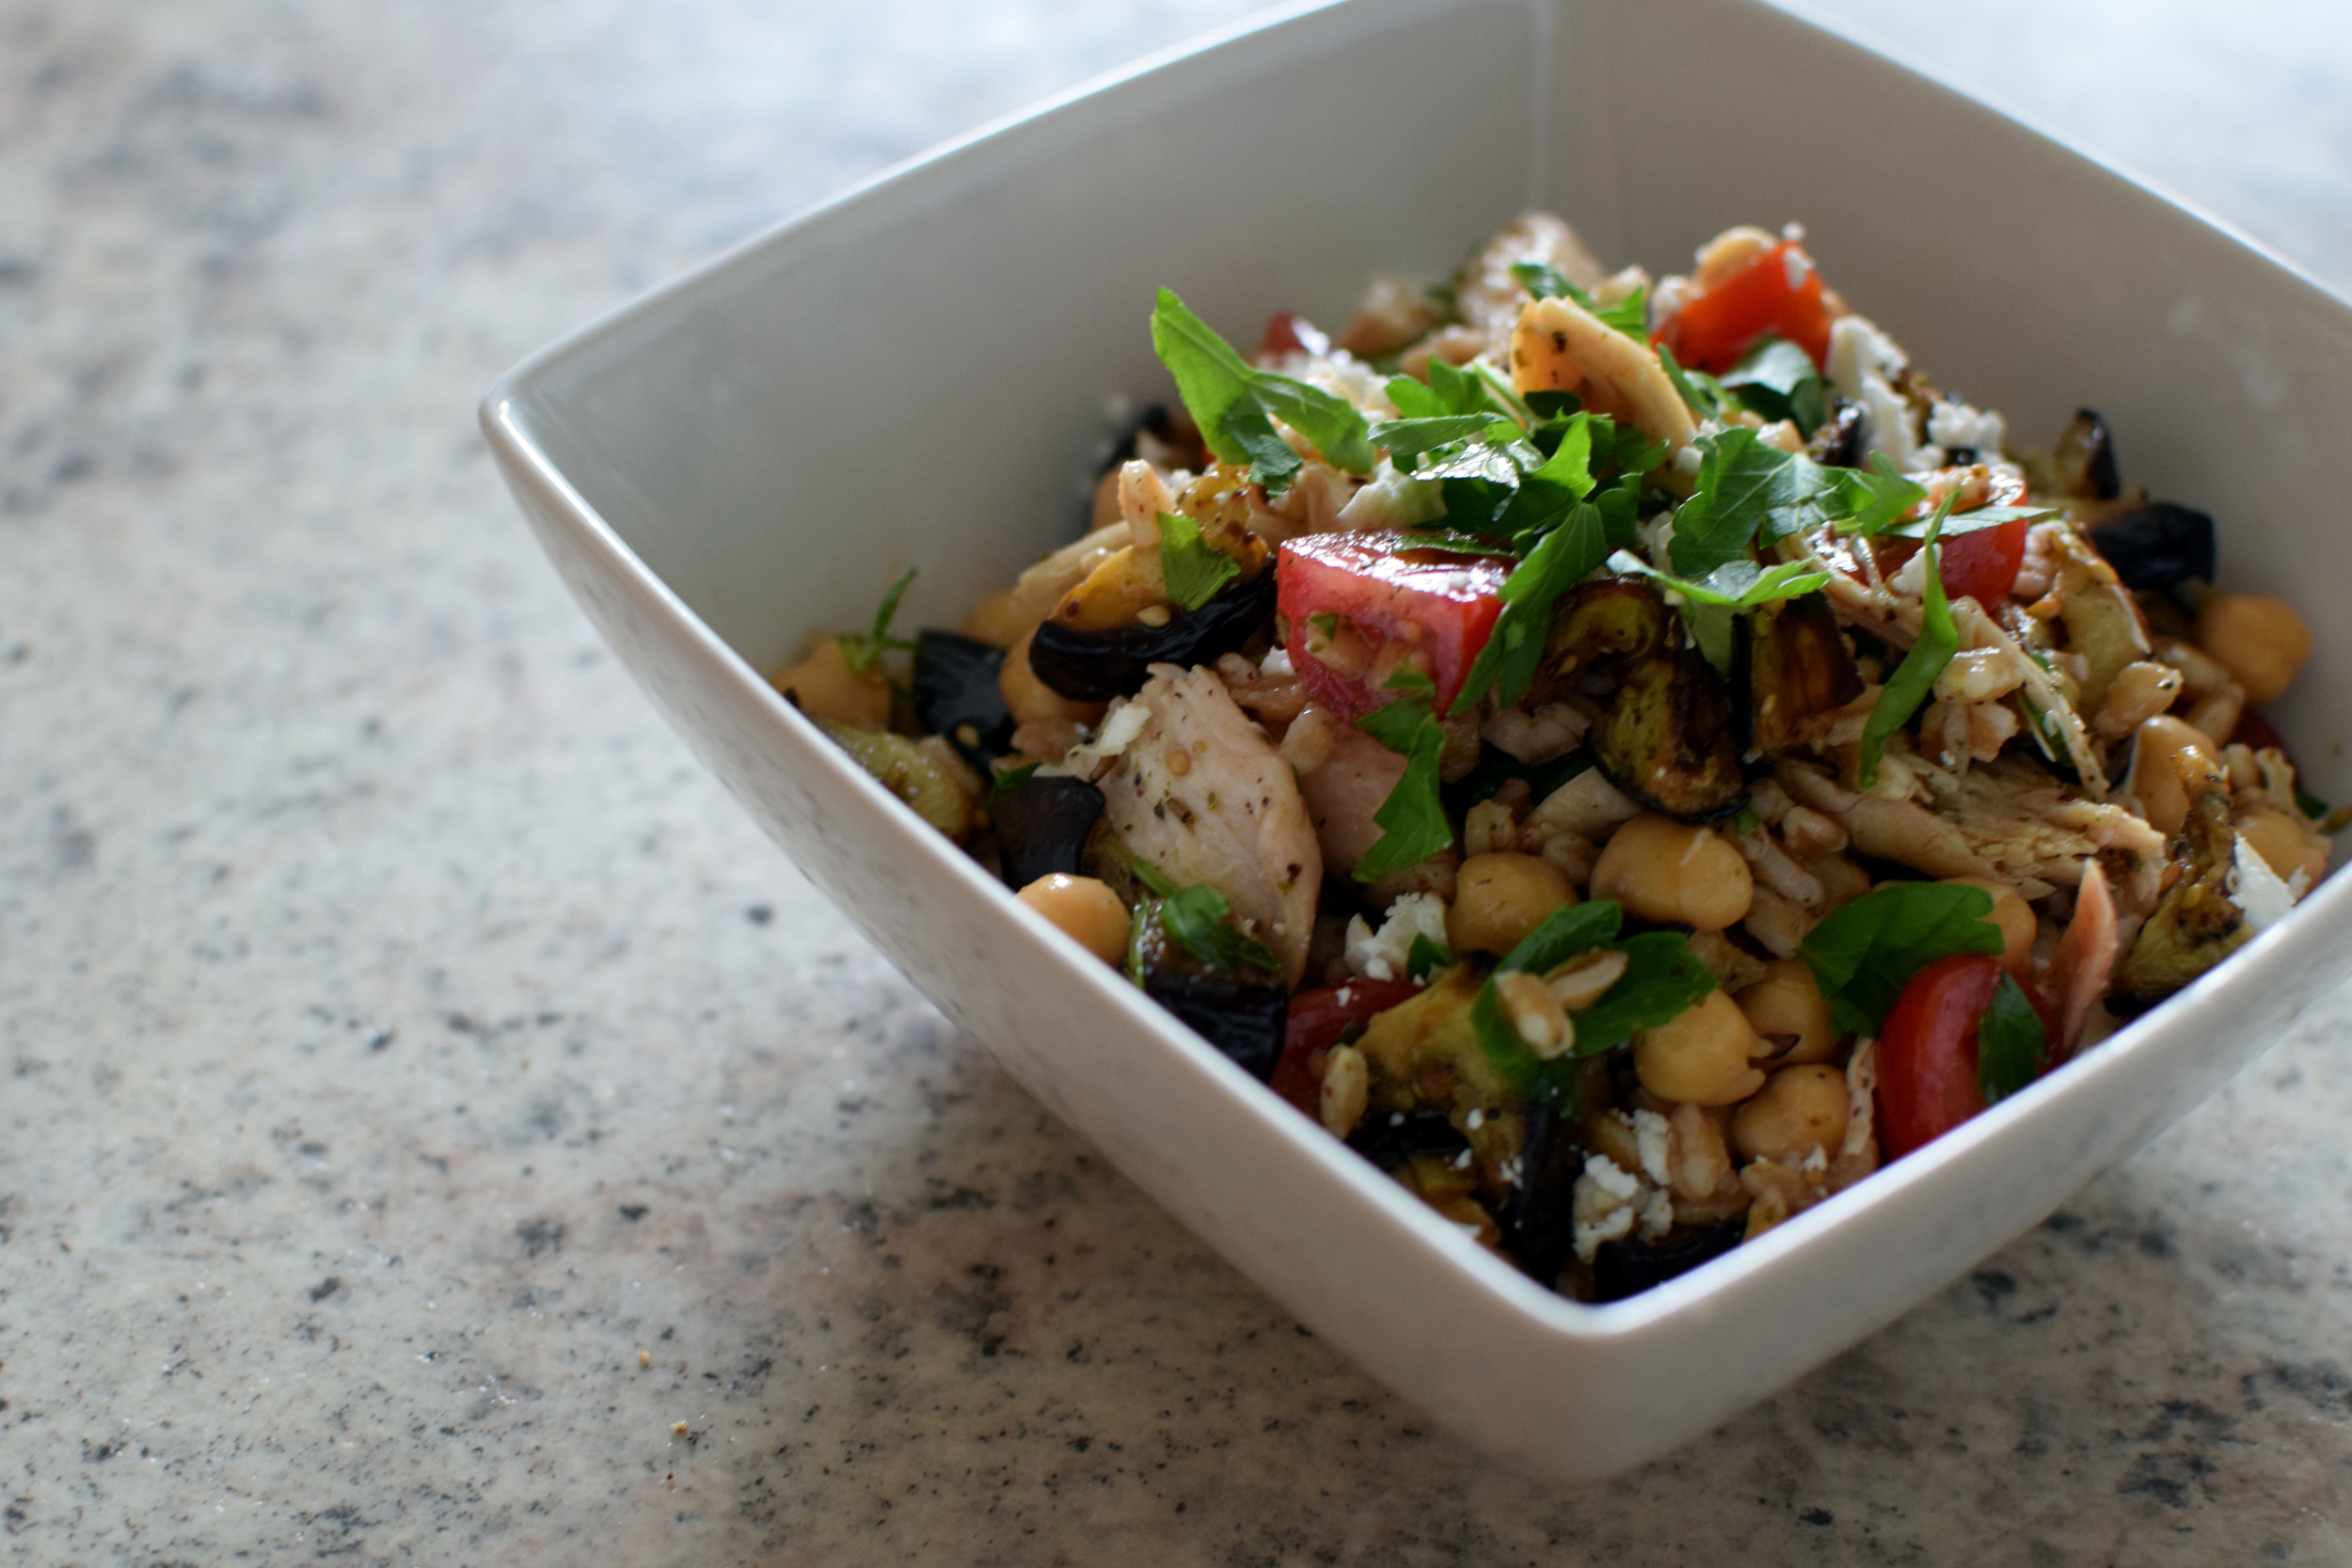 Middle Eastern Grain Bowls. Spice up your routine with a quick, easy, #BigBatchRecipe featuring your new favorite spice, za'atar! | themillennialmenu.com